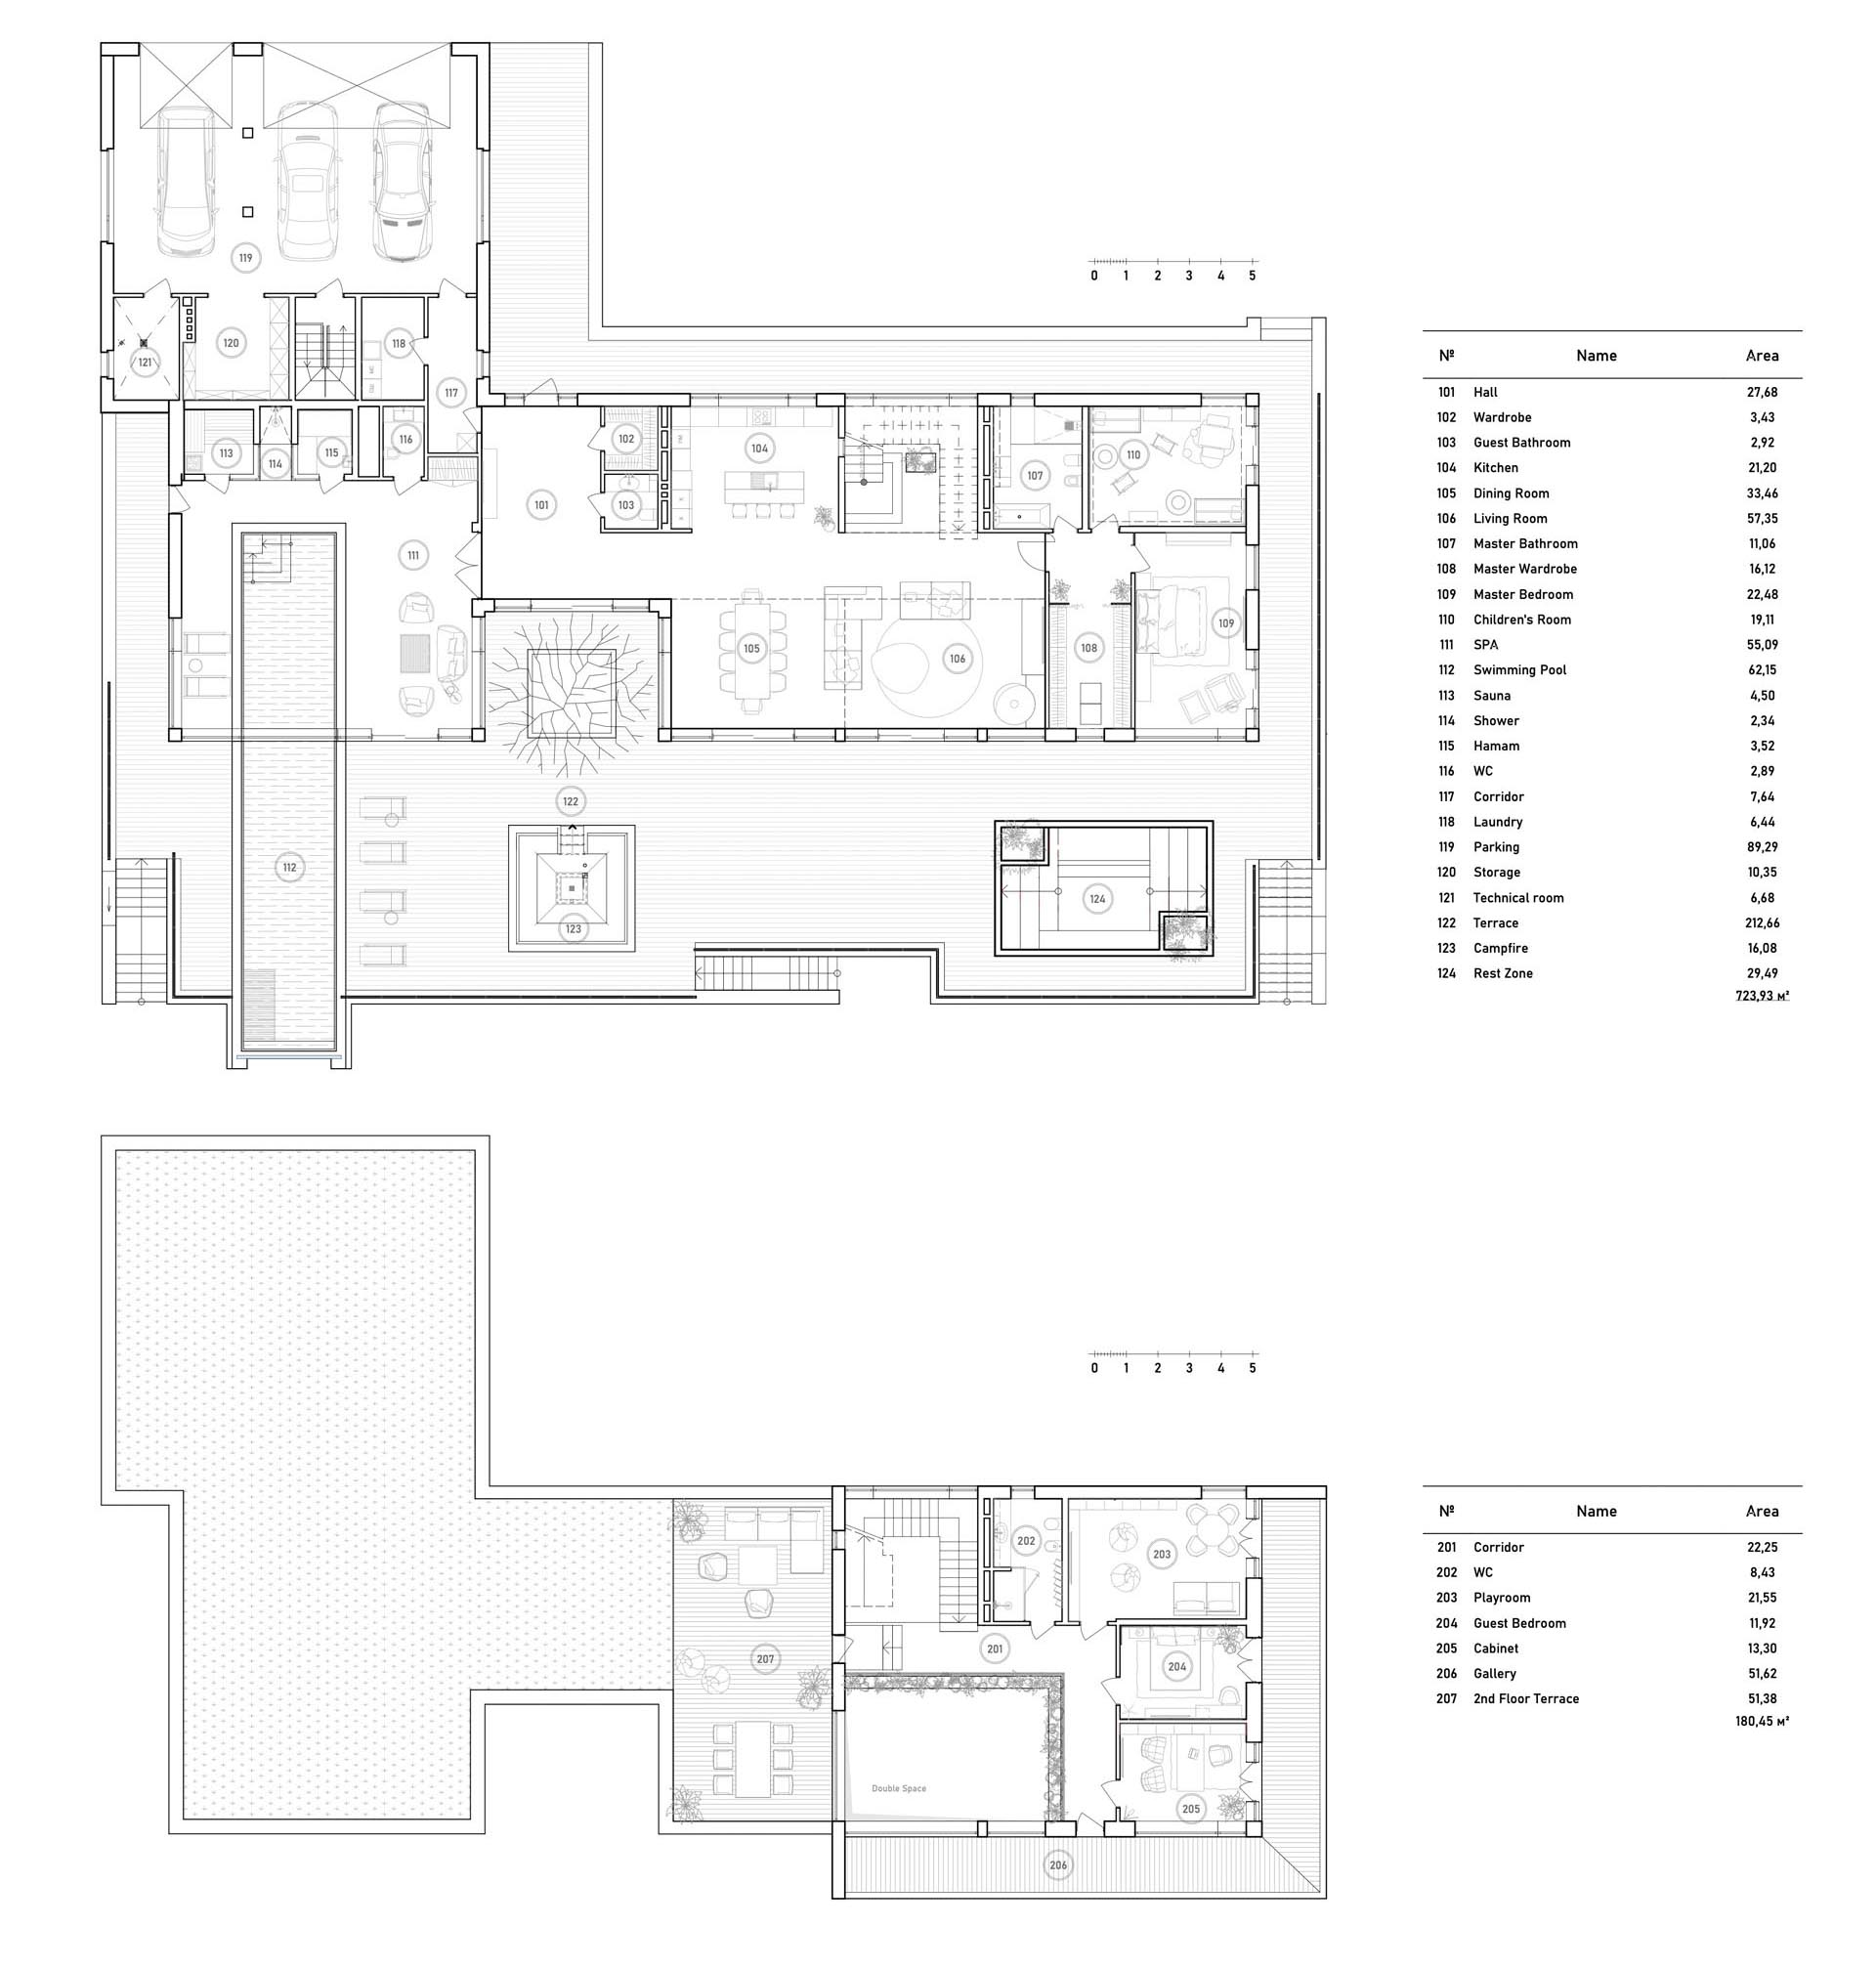 The floor plan of a modern two story house with indoor/outdoor pool.